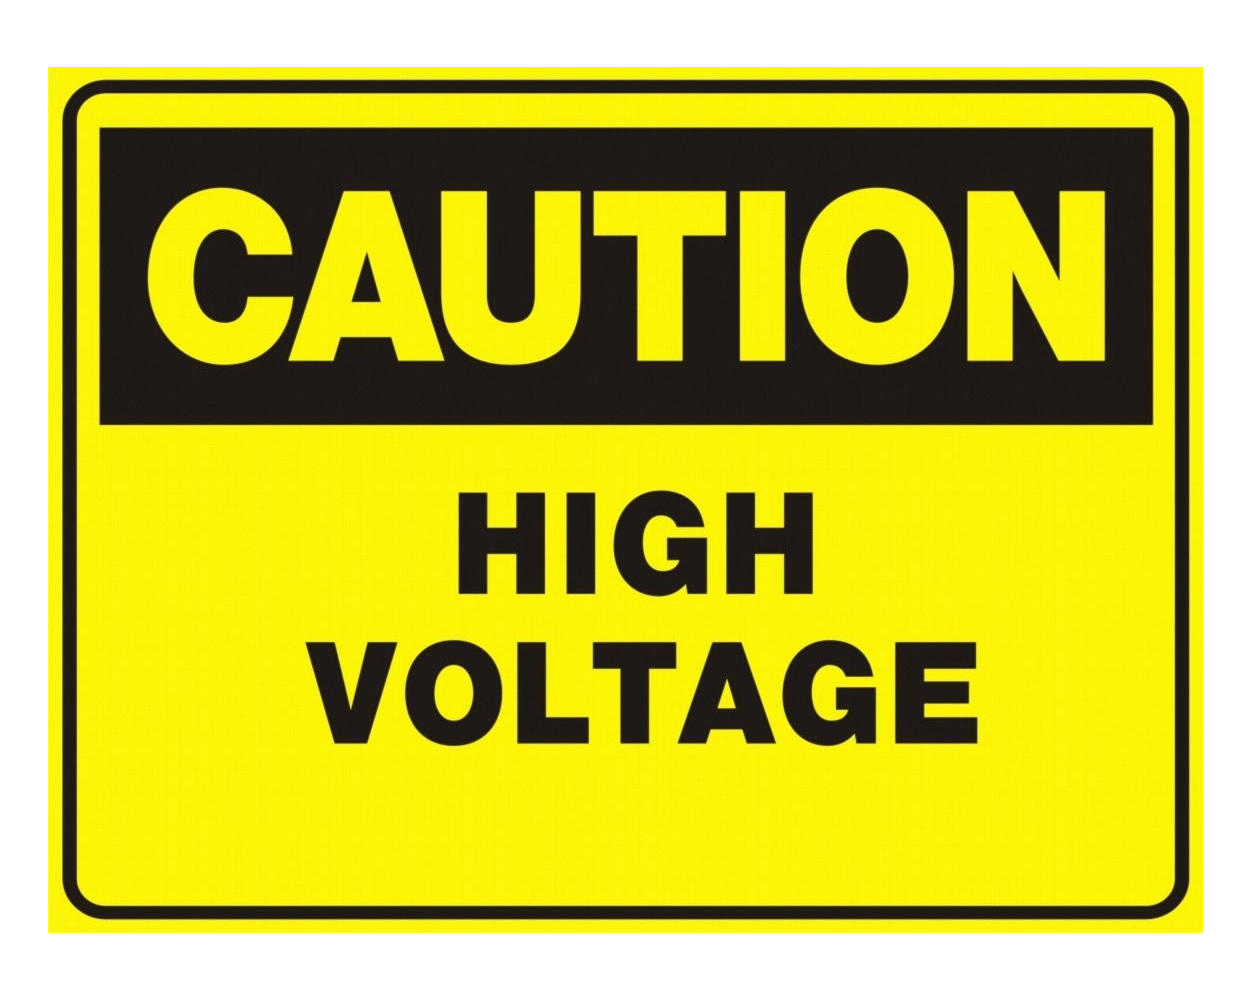 Free download of High Voltage  PNG Clipart